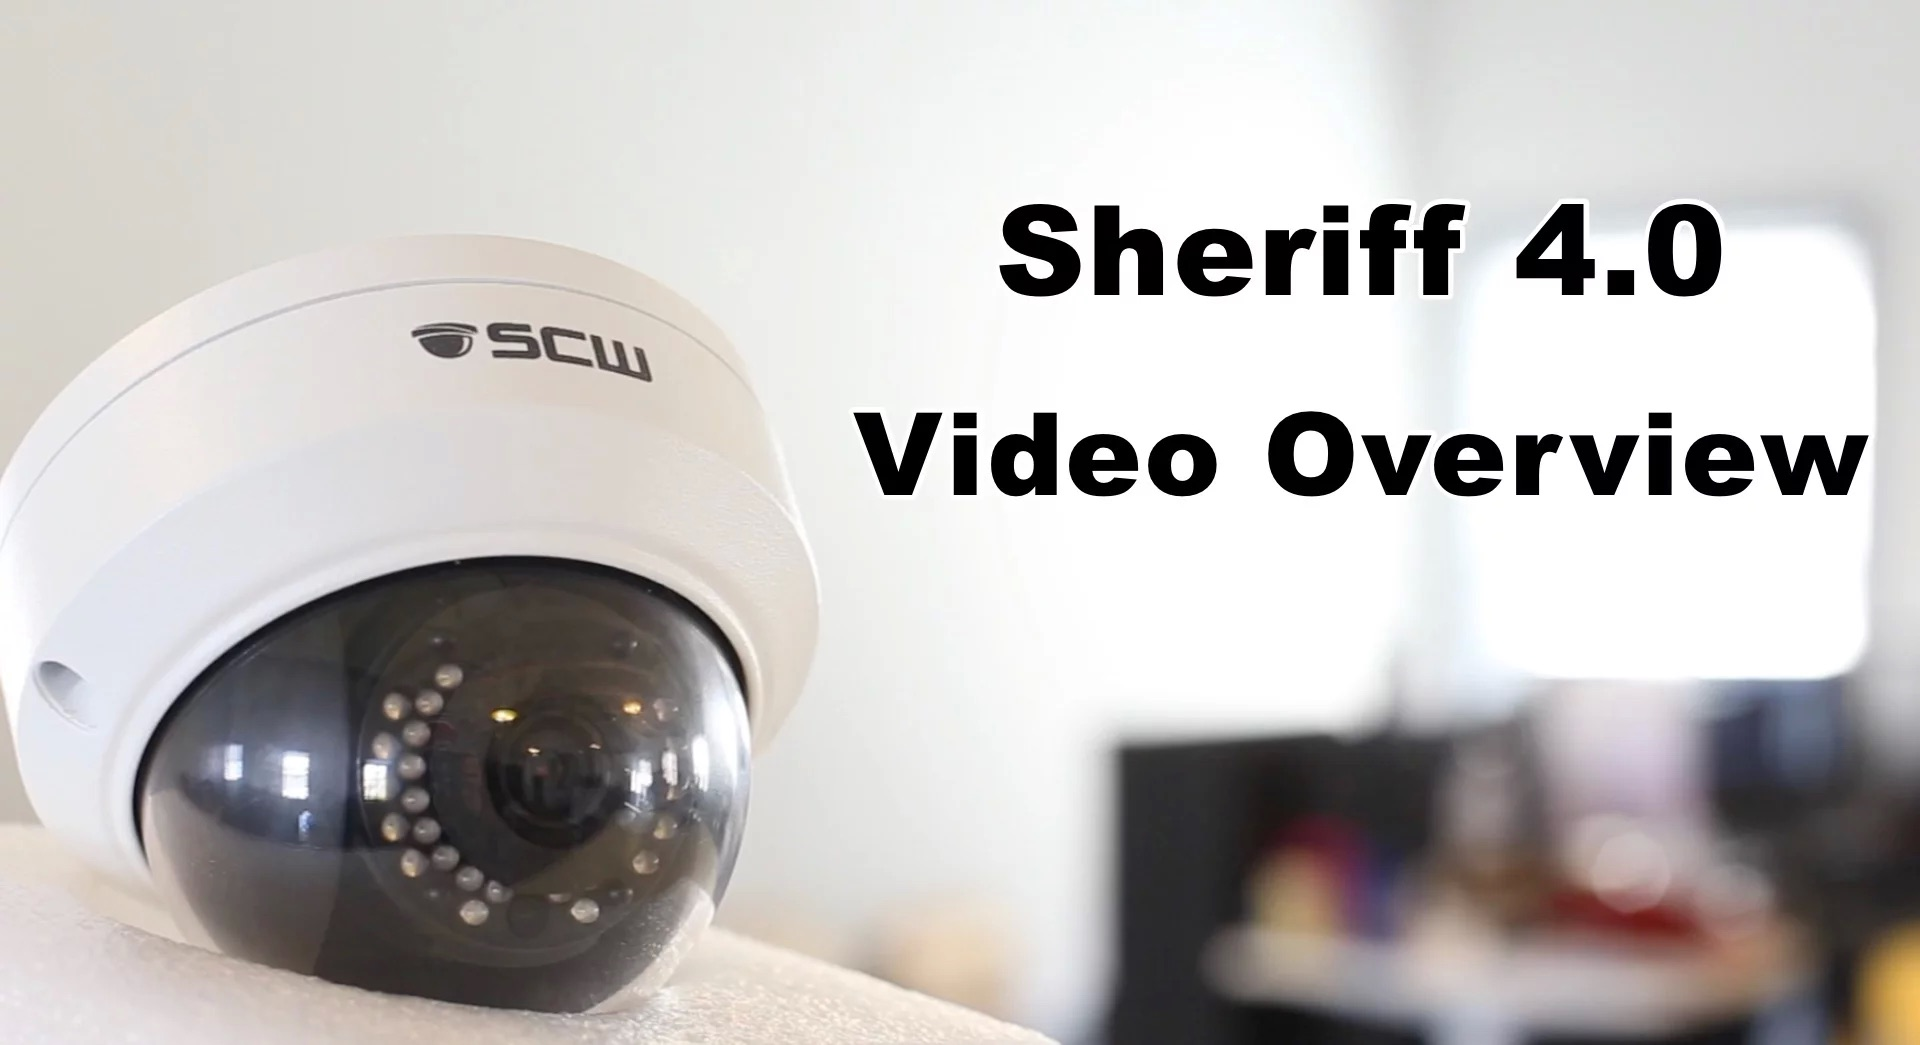 Introduction to the Sheriff 4.0